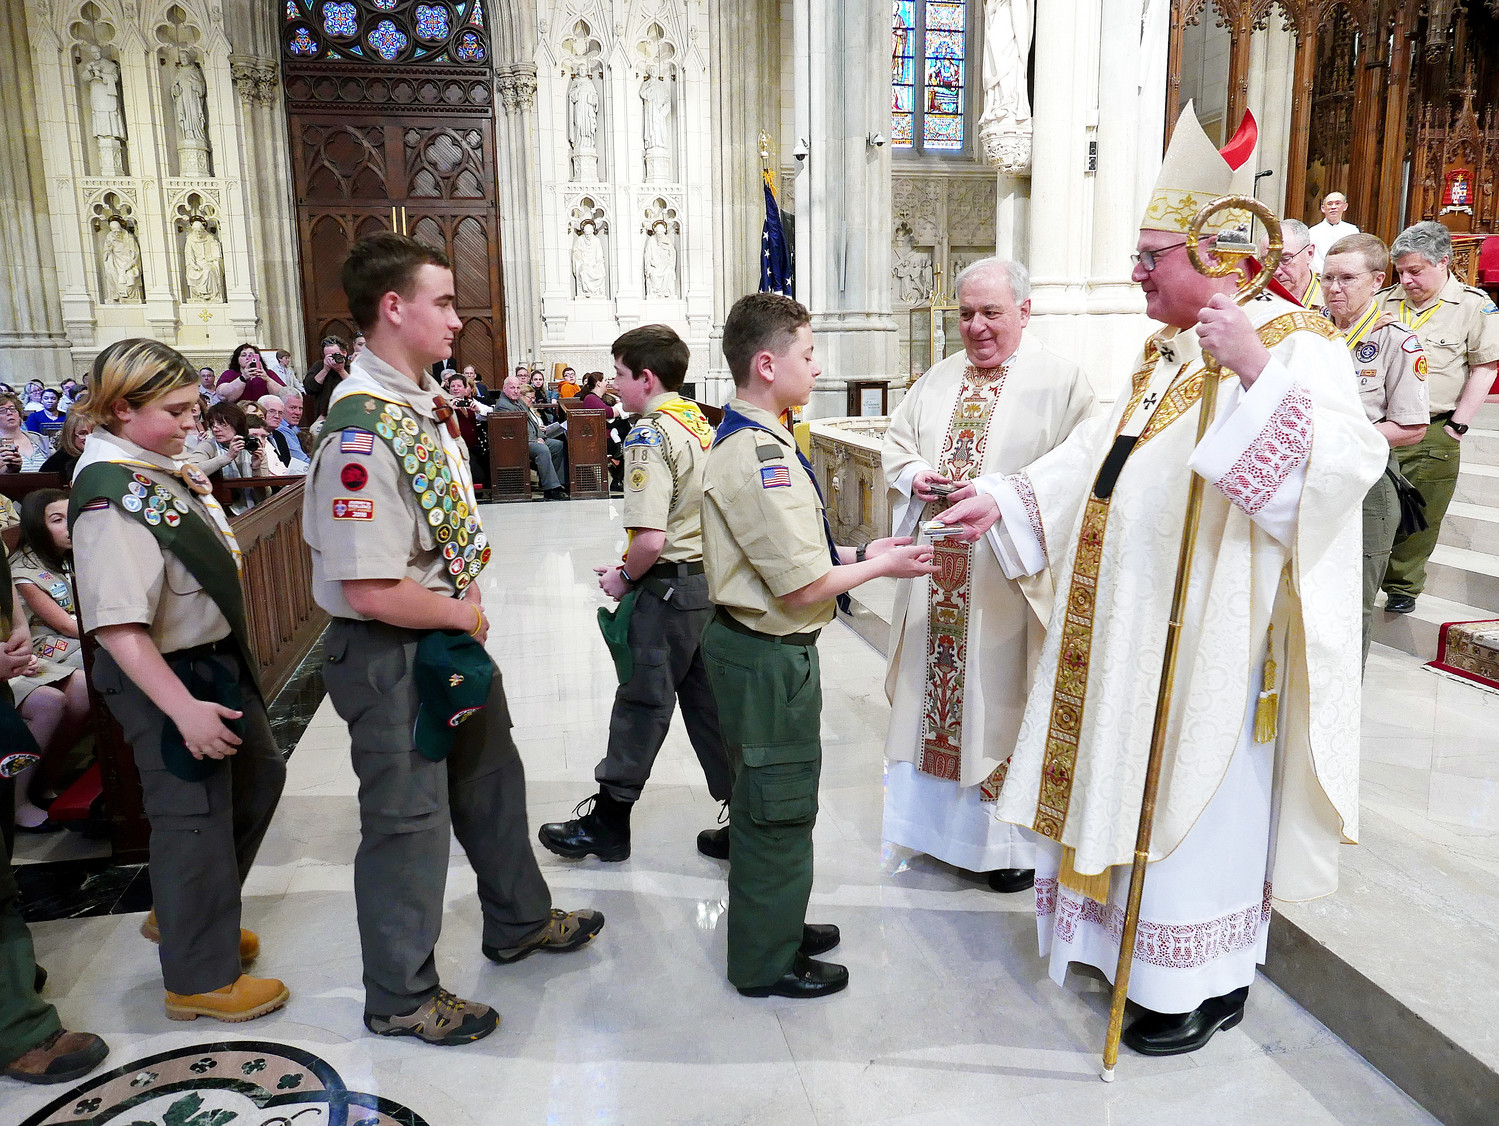 Cardinal Dolan presents medals to the scouts with assistance from Msgr. Anthony Marchitelli, scouting chaplain.